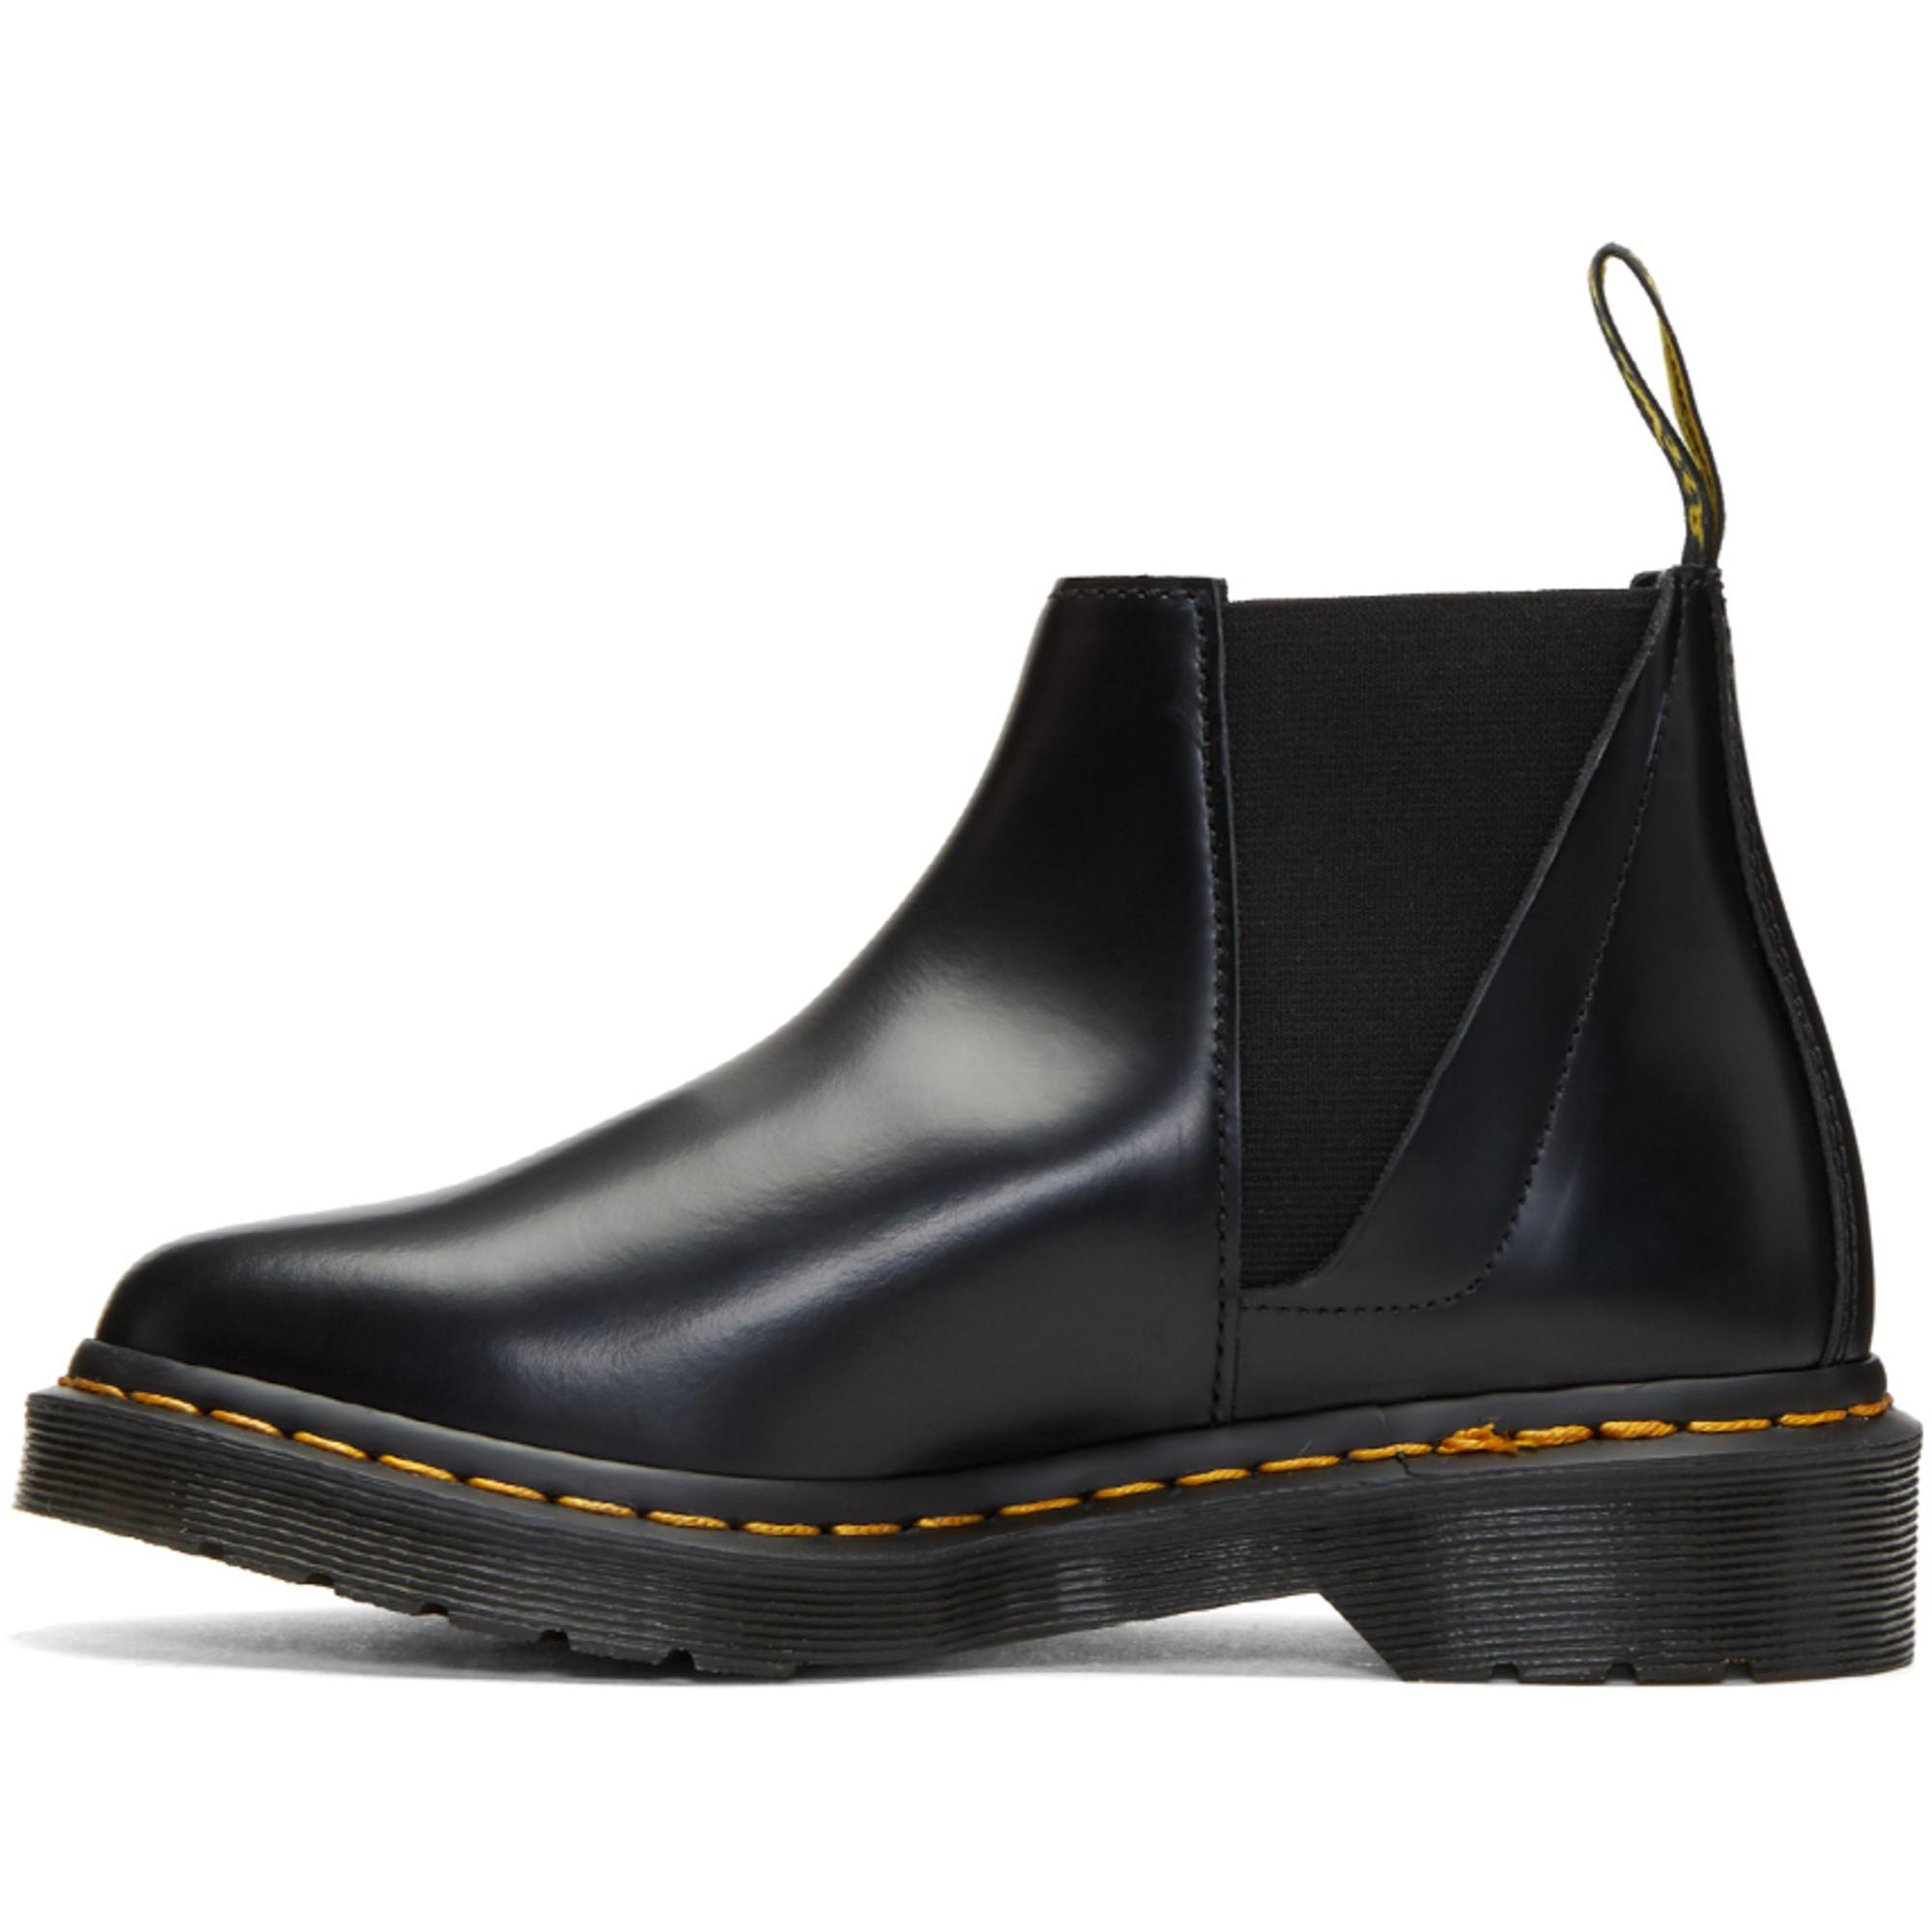 Dr. Martens Leather Bianca Chelsea Boot in Black